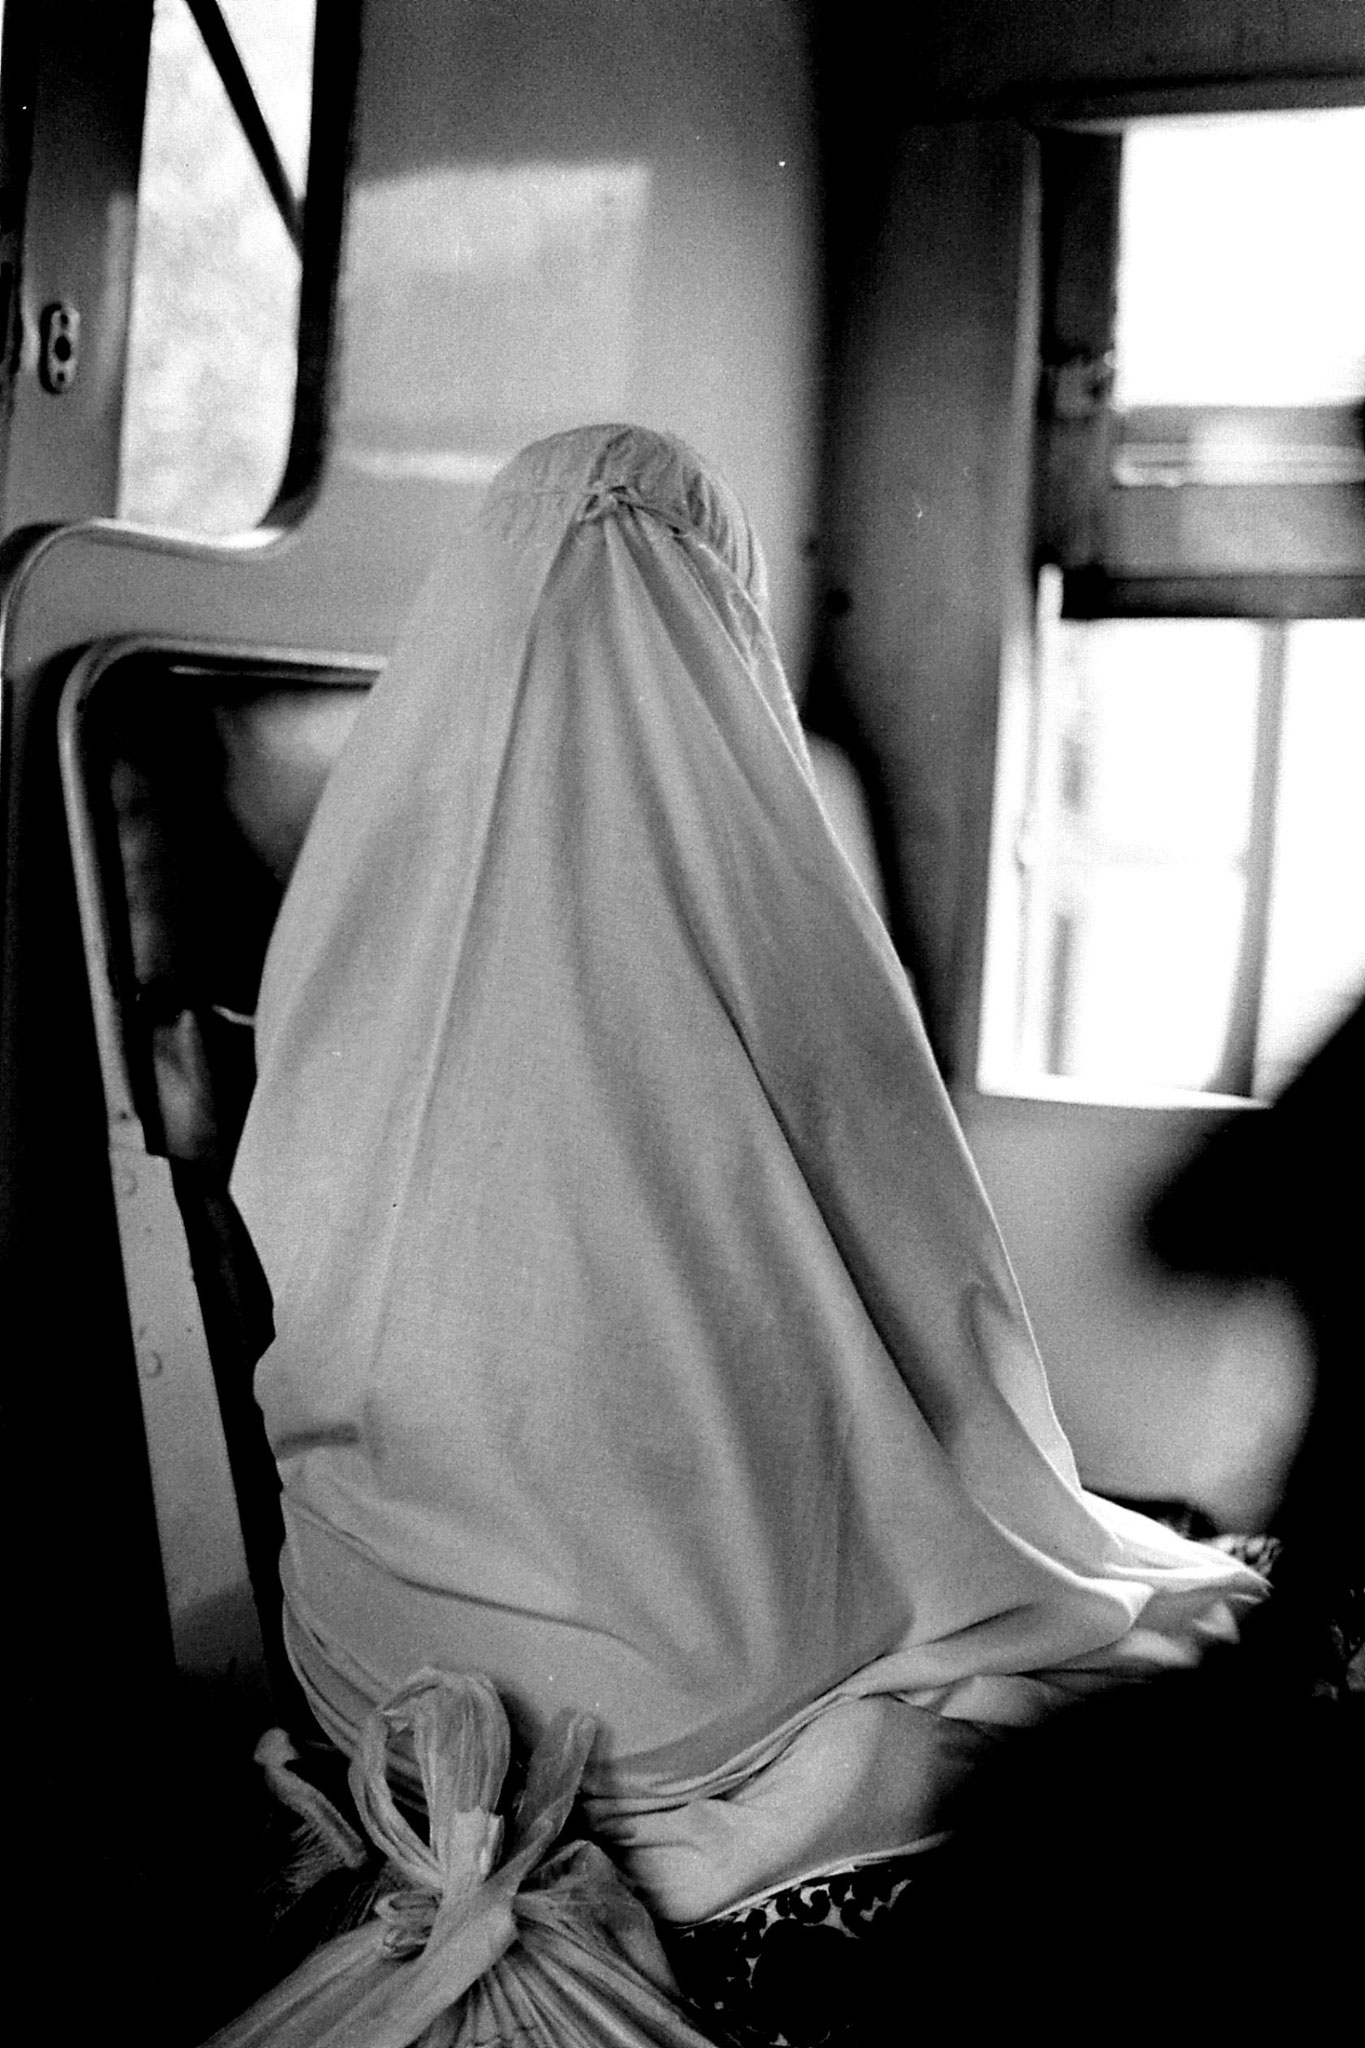 21/6/1990: 33: woman praying on train